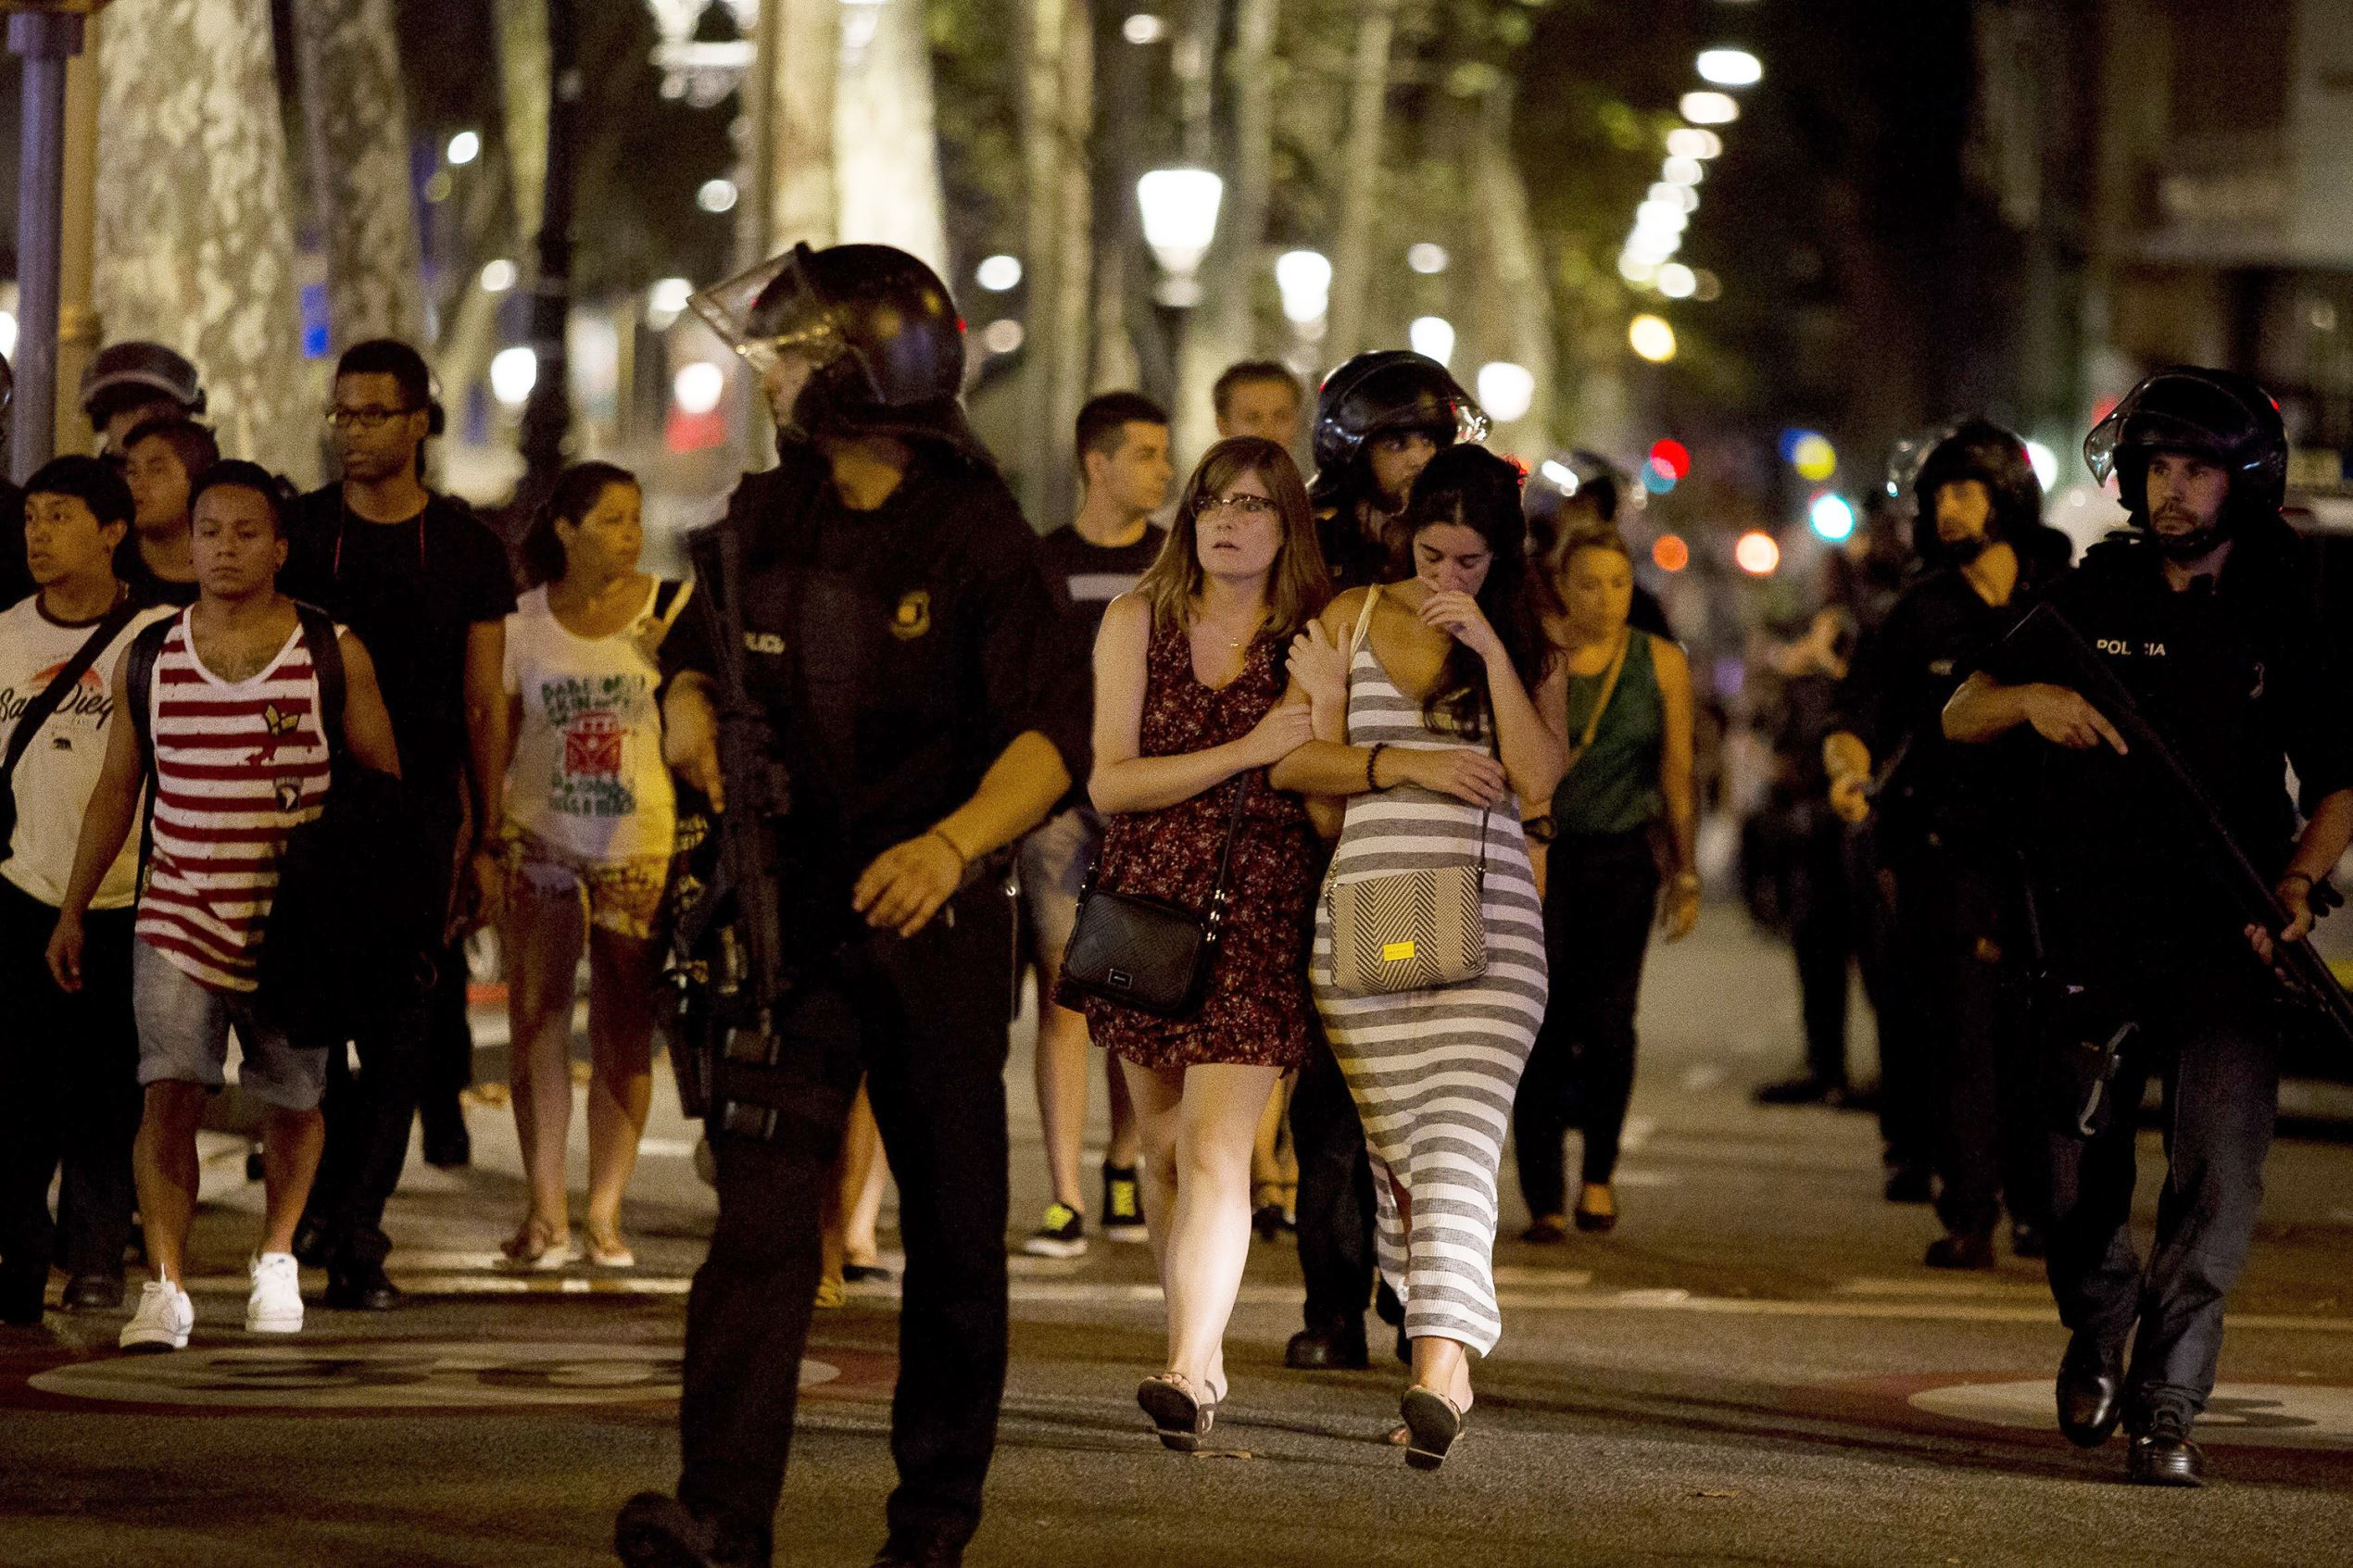 Slide 2 of 25: BARCELONA, SPAIN - AUGUST 17: Police officers evacuate people from a shop at Las Ramblas as they take security measures at the area after a van plowed into the crowd, injuring several people in Barcelona, Spain on August 17, 2017. (Photo by Albert Llop/Anadolu Agency/Getty Images)